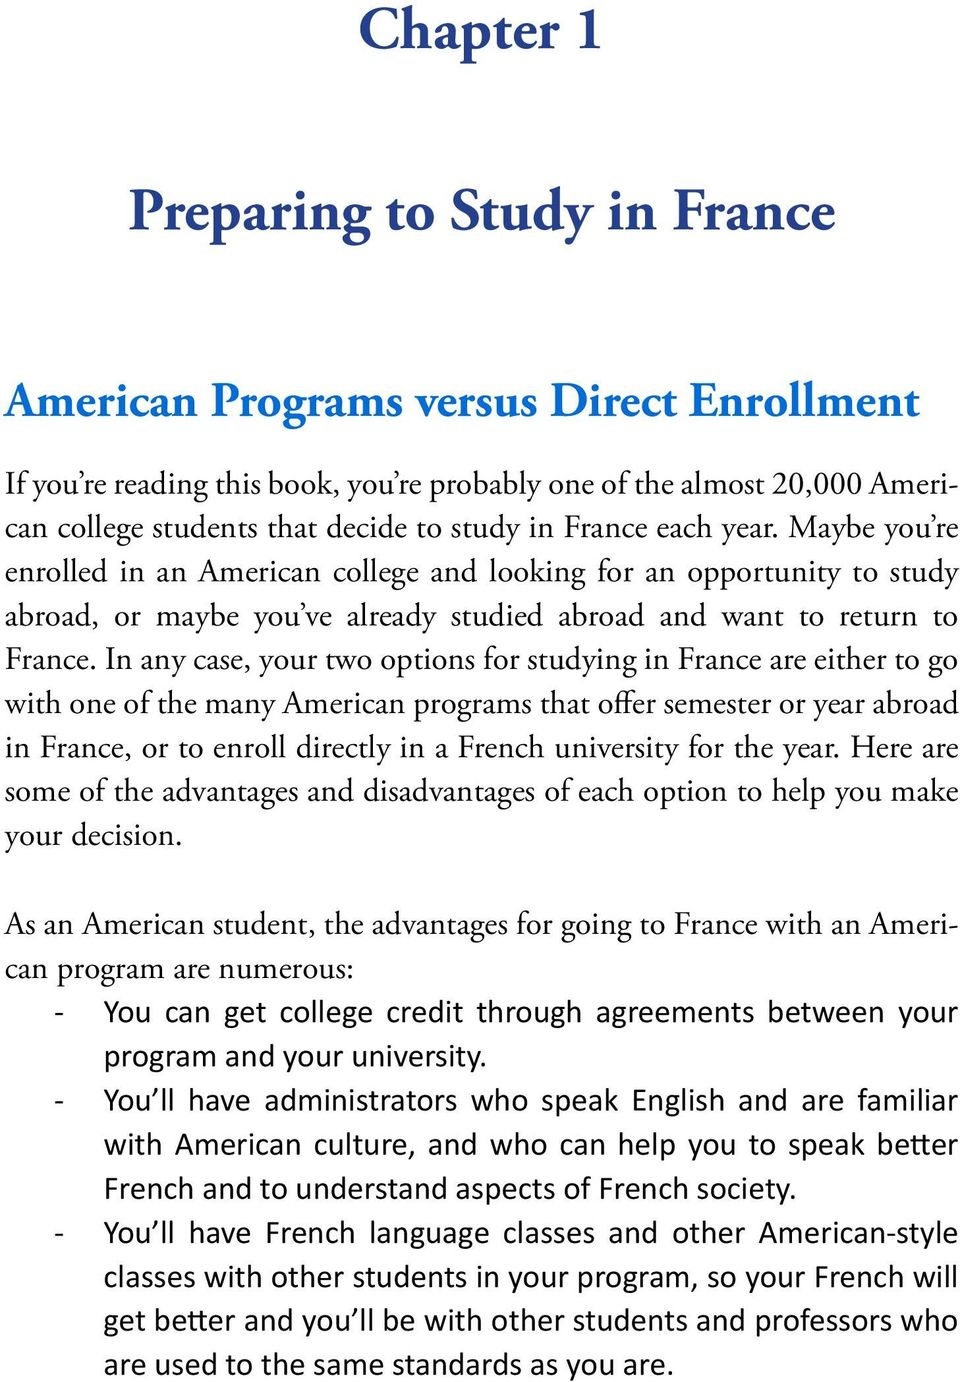 In any case, your two options for studying in France are either to go with one of the many American programs that offer semester or year abroad in France, or to enroll directly in a French university